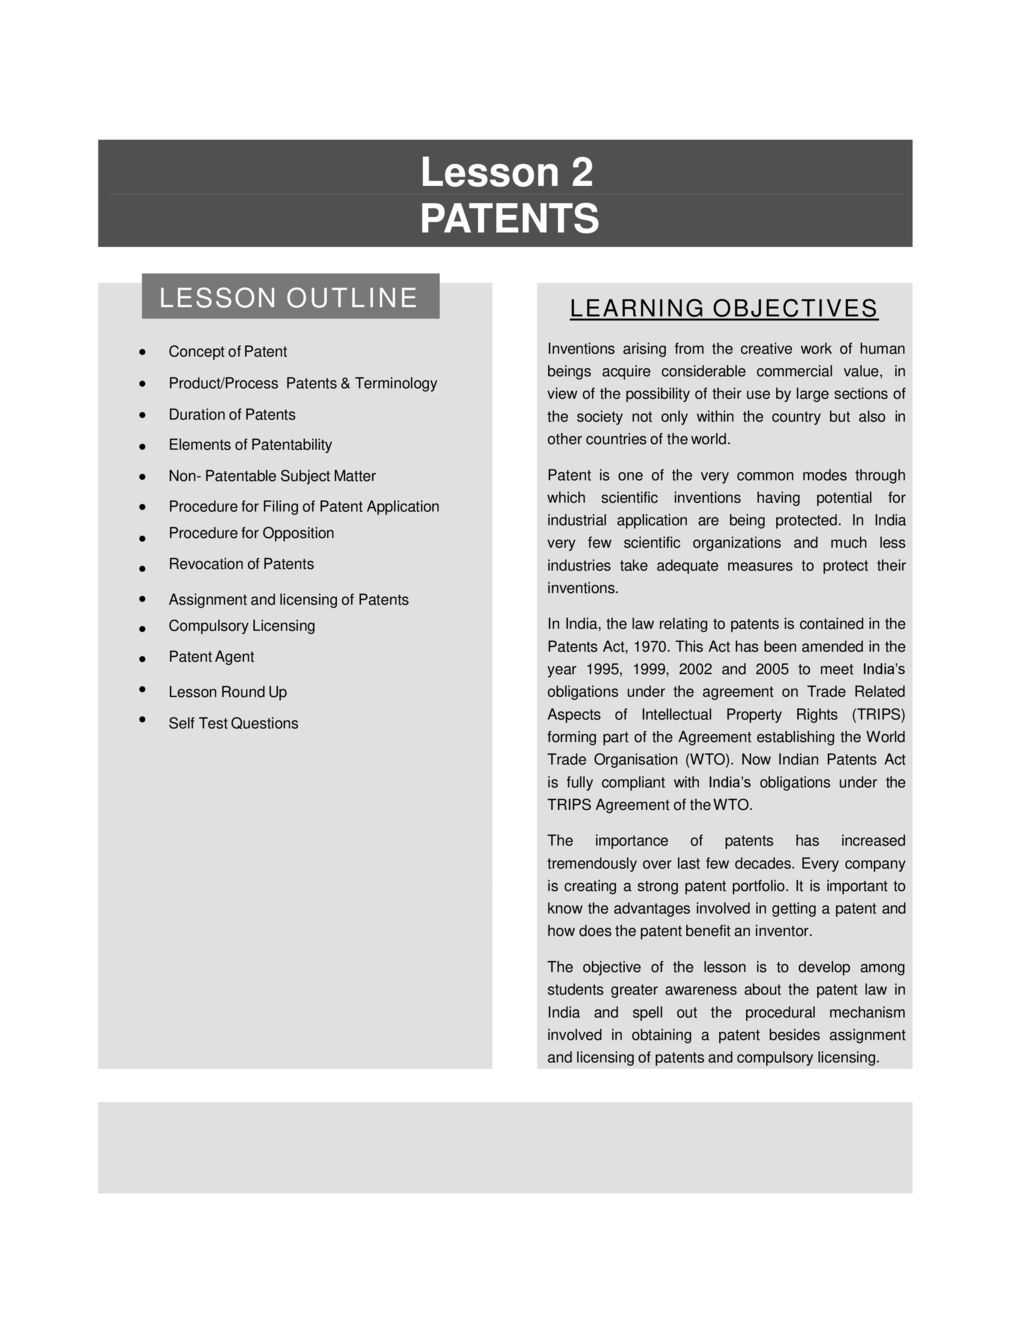 INTELLECTUAL PROPERTY RIGHTS-LAW AND PRACTICE - ppt download